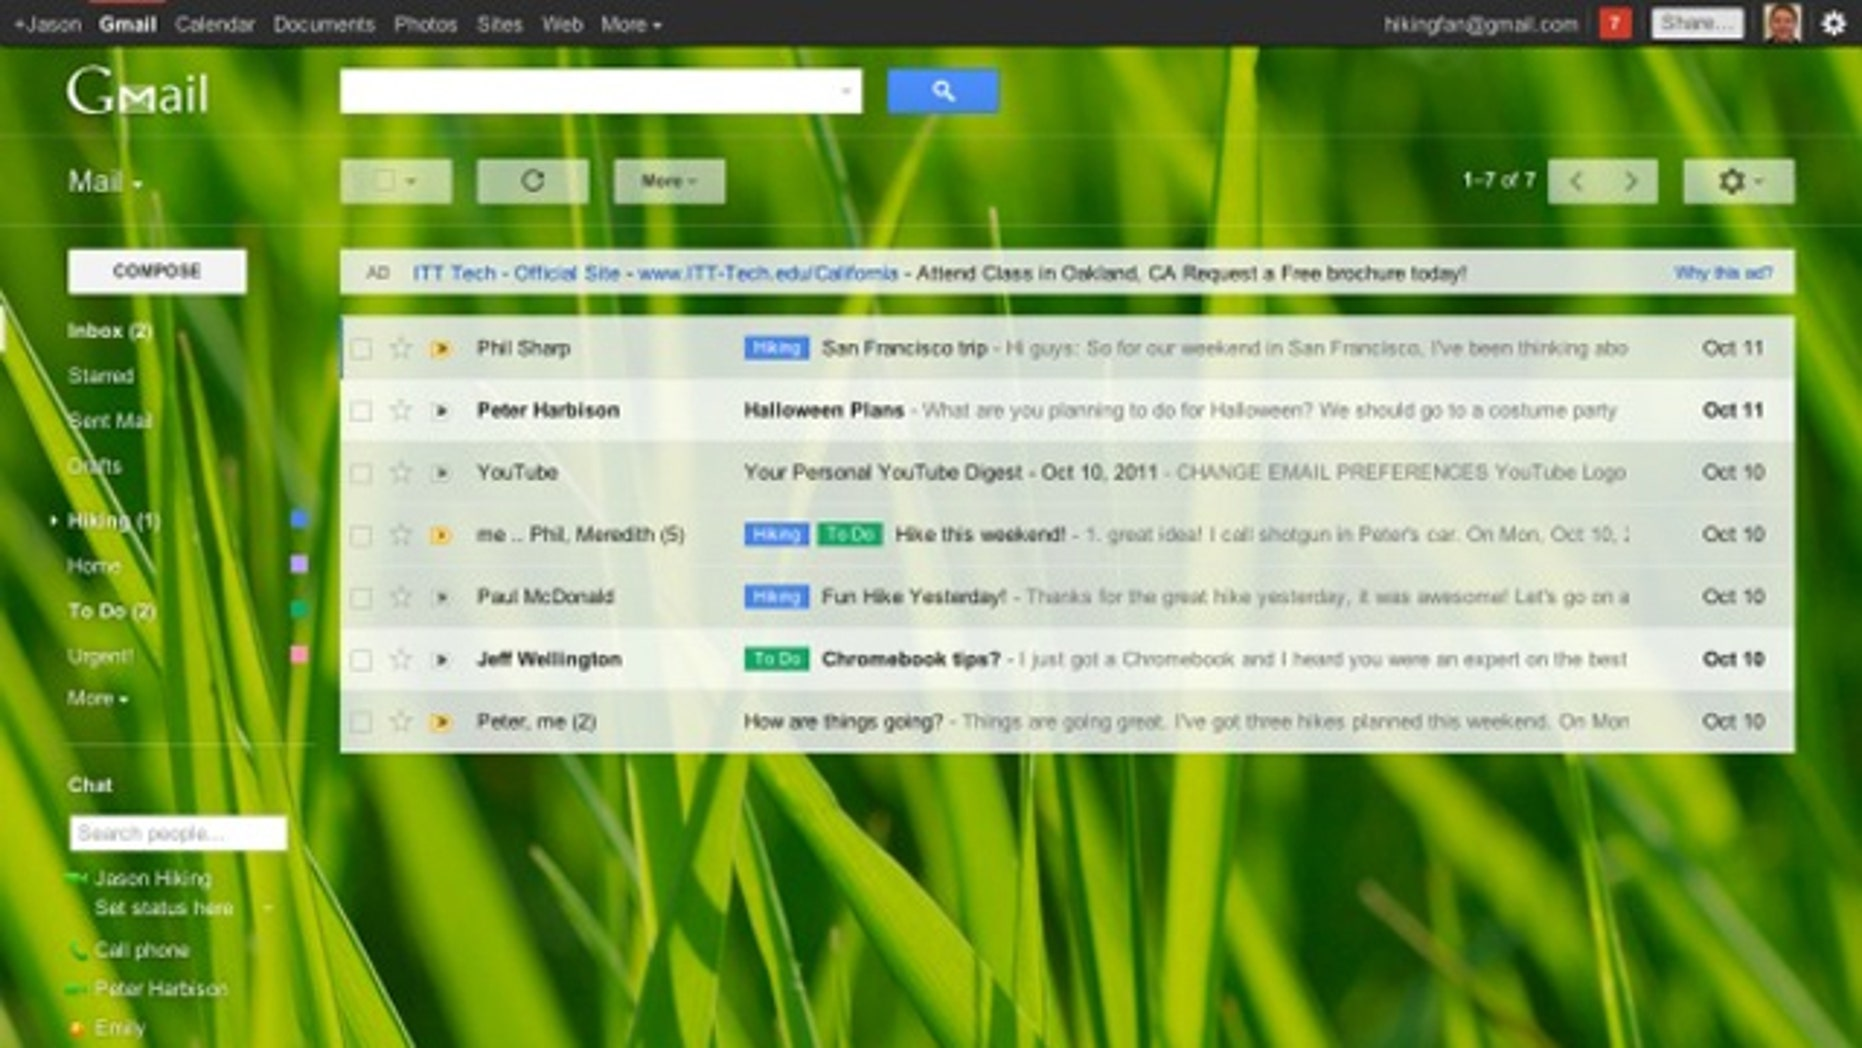 The new Gmail.